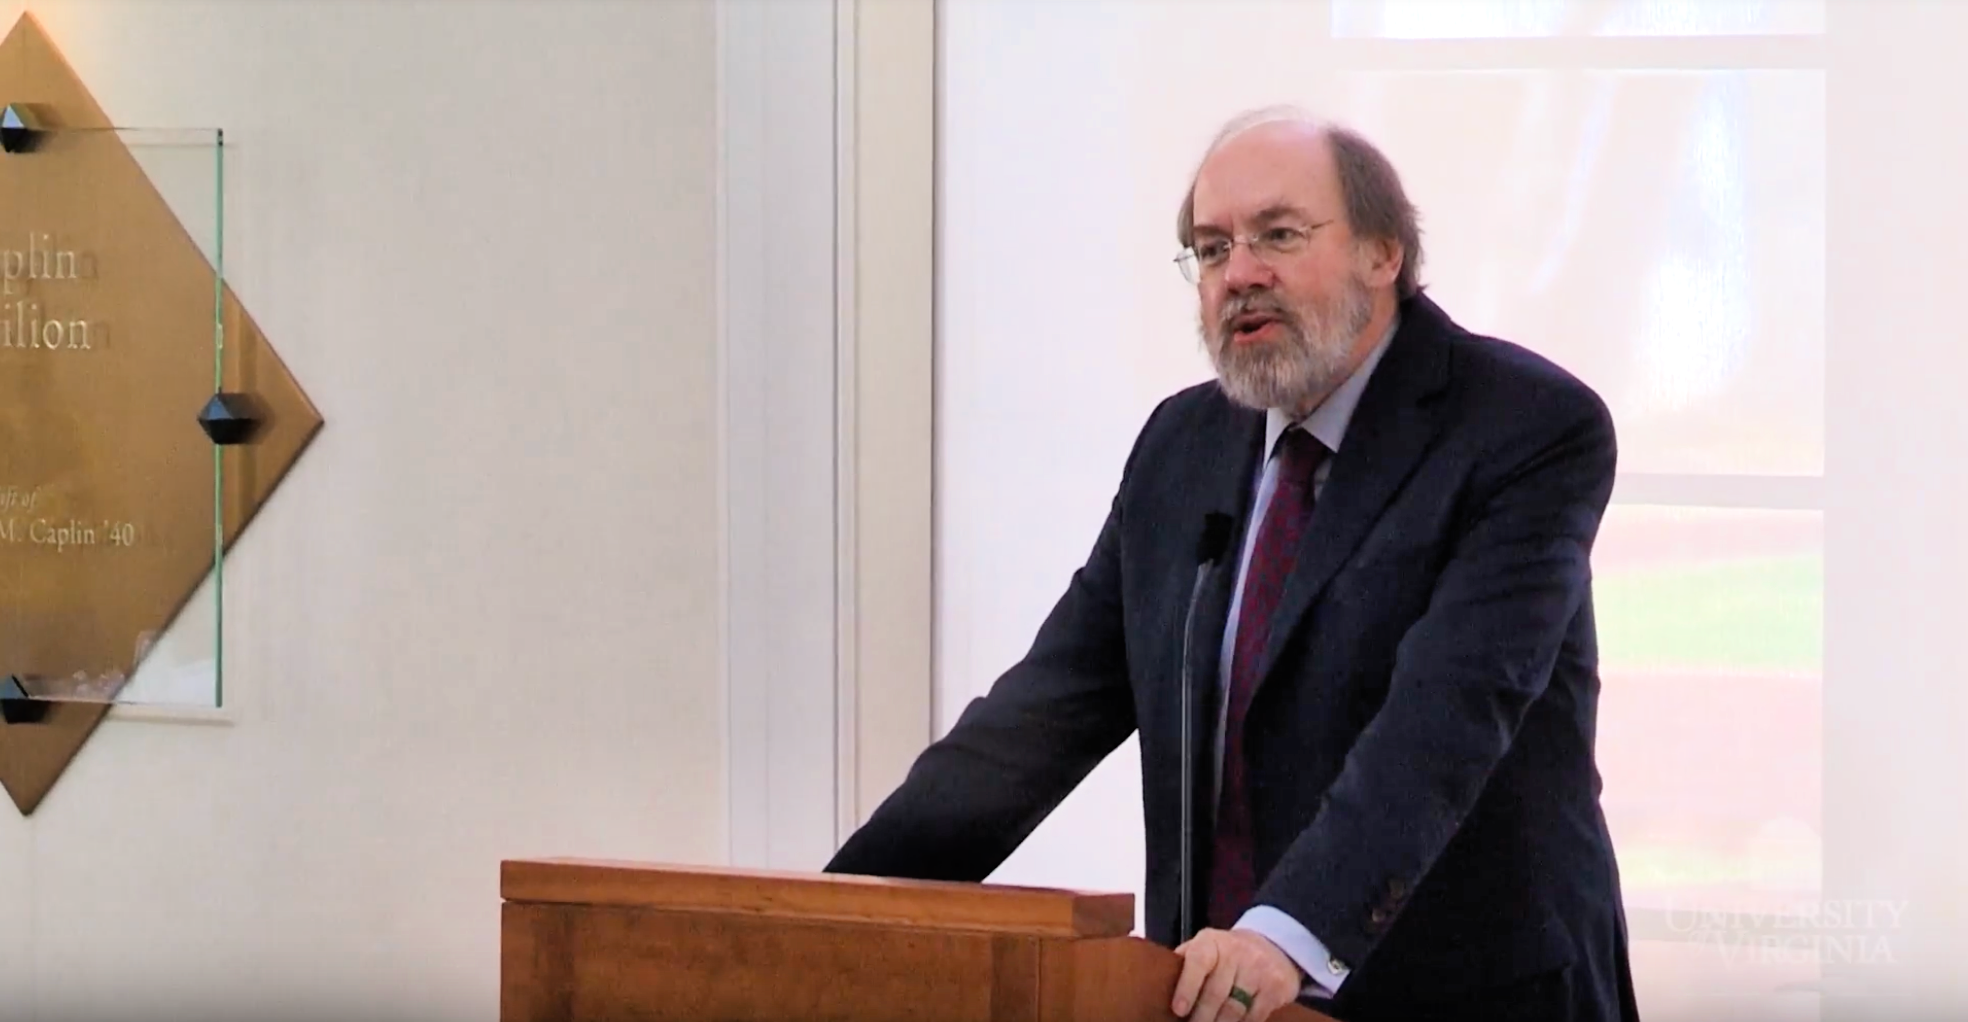 Judge Frank Easterbrook speaks at the University of Virginia School of Law in April 2018. (YouTube screenshot)